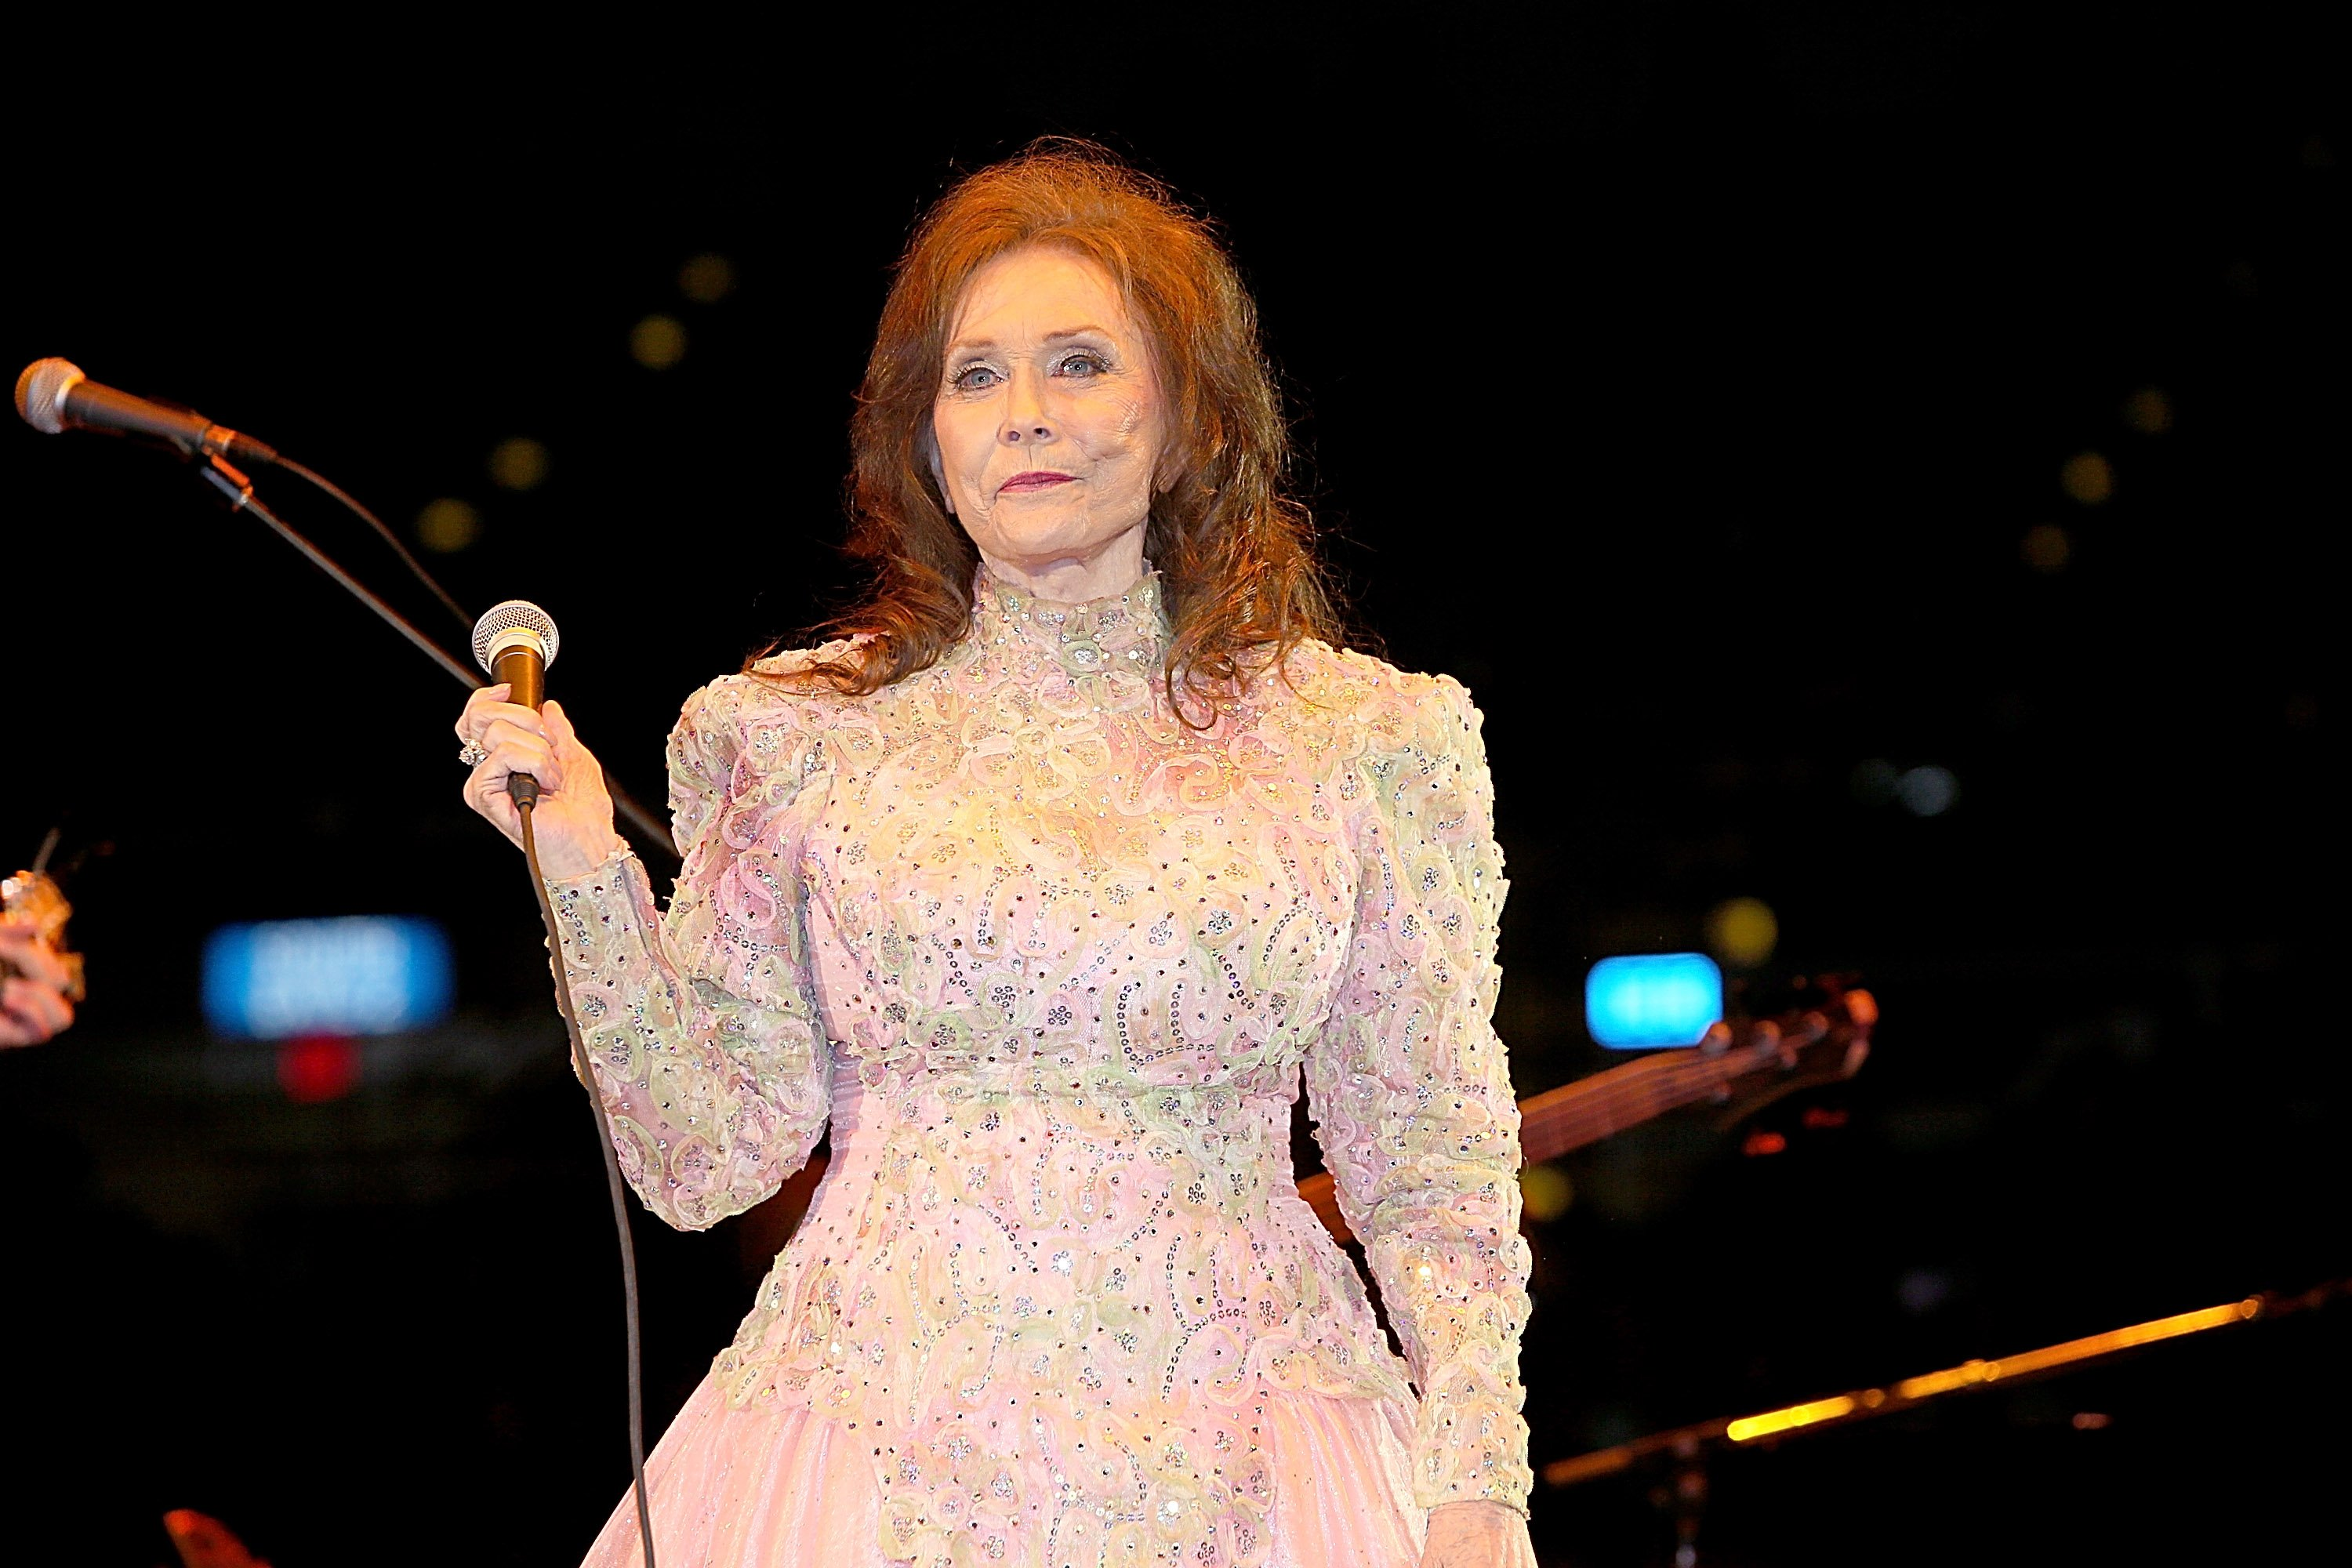 Loretta Lynn performs at Adrian Phillips Ballroom July 31, 2004 in Atlantic City, New Jersey. | Source: Getty Images